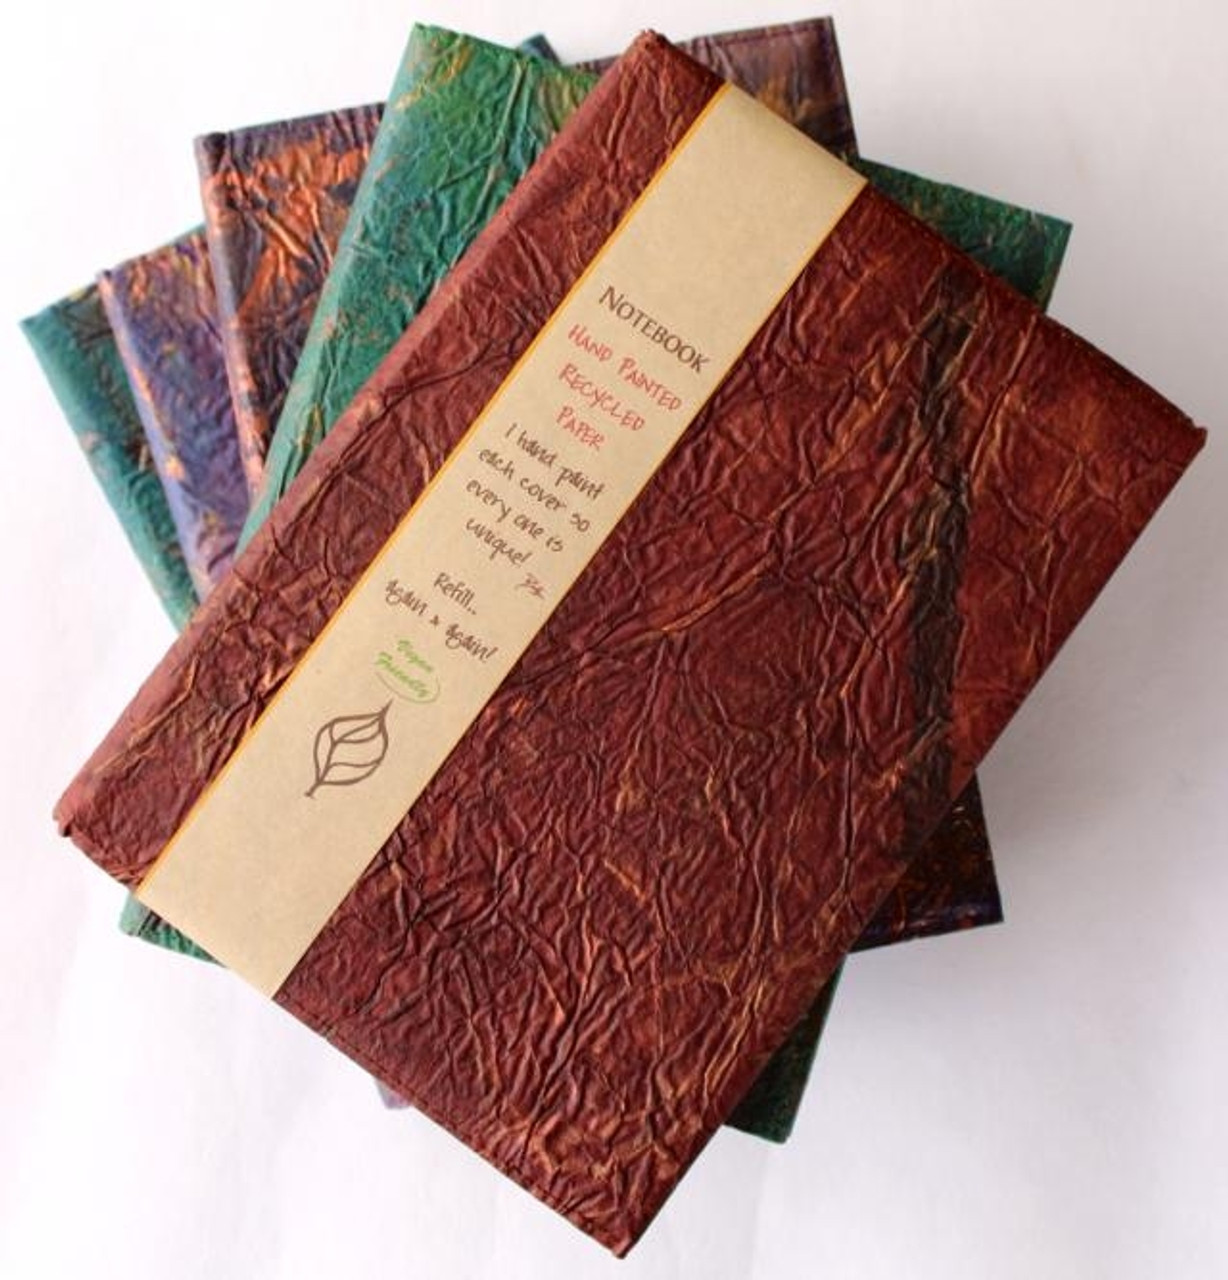 Paper Art Notebook Covers